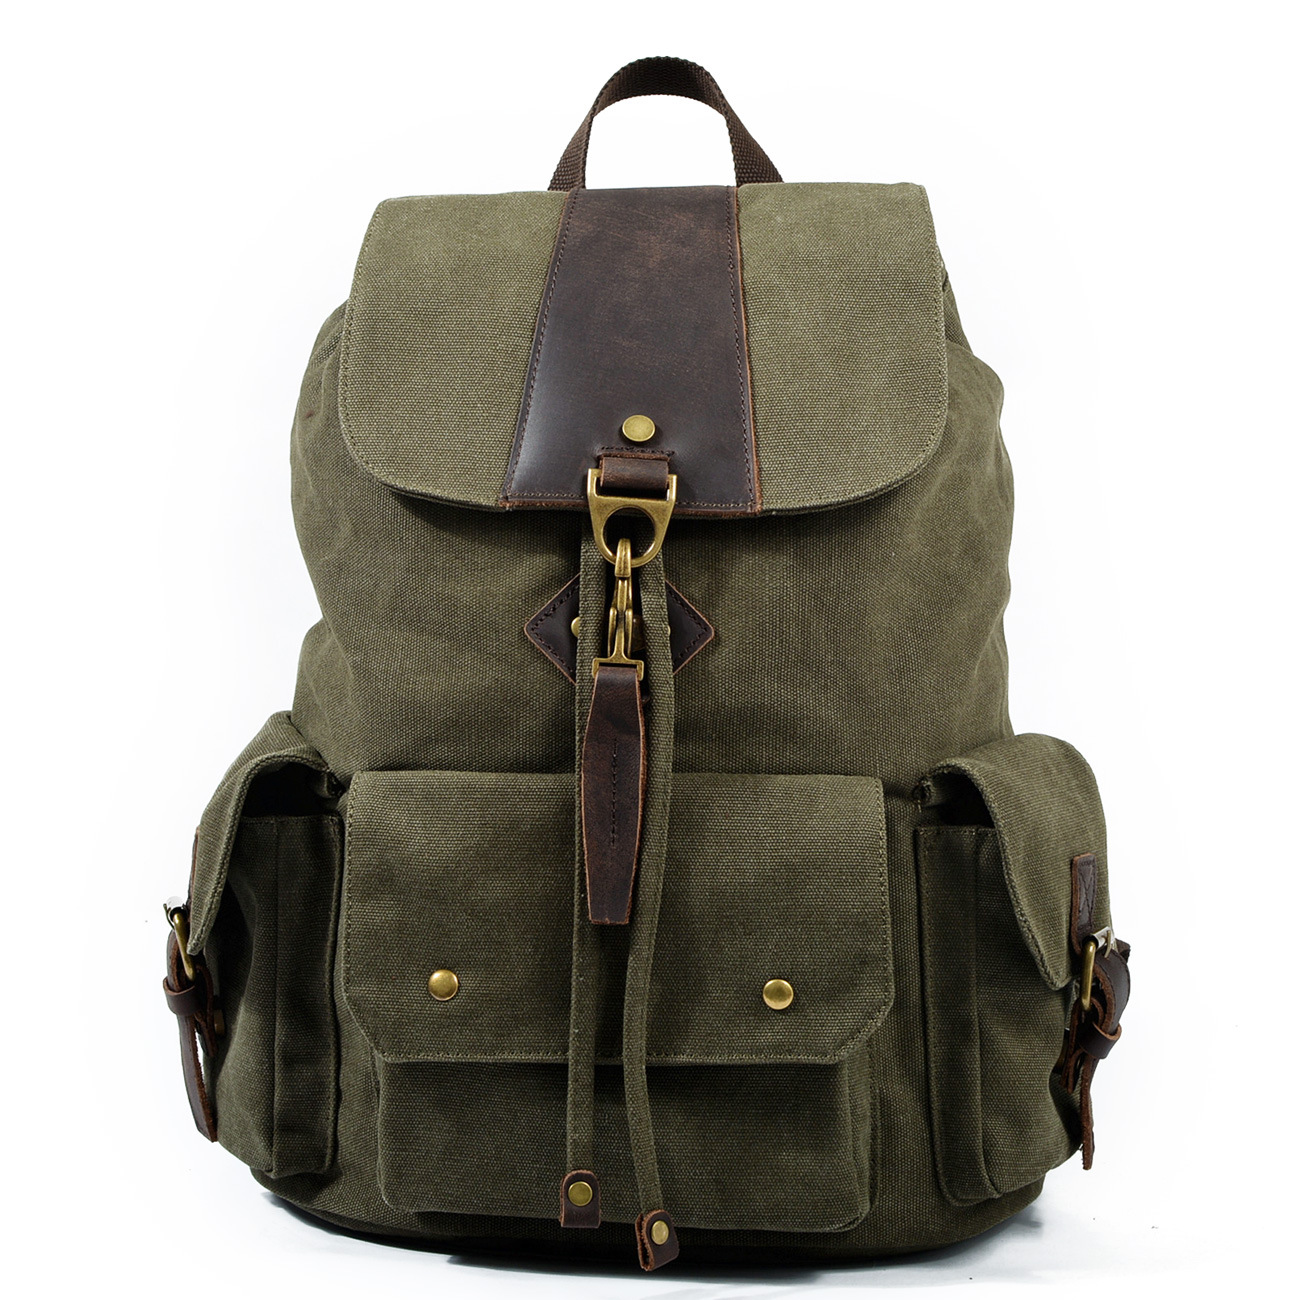 High Quality Man Canvas Backpack Men Laptop Backpacks Casual Bookbag Unisex School Bags Vintage Brand Male Travel Rucksack new 2016 brand high quality leather backpack men casual laptop backpacks college style school book bags mochila rucksack 112zs